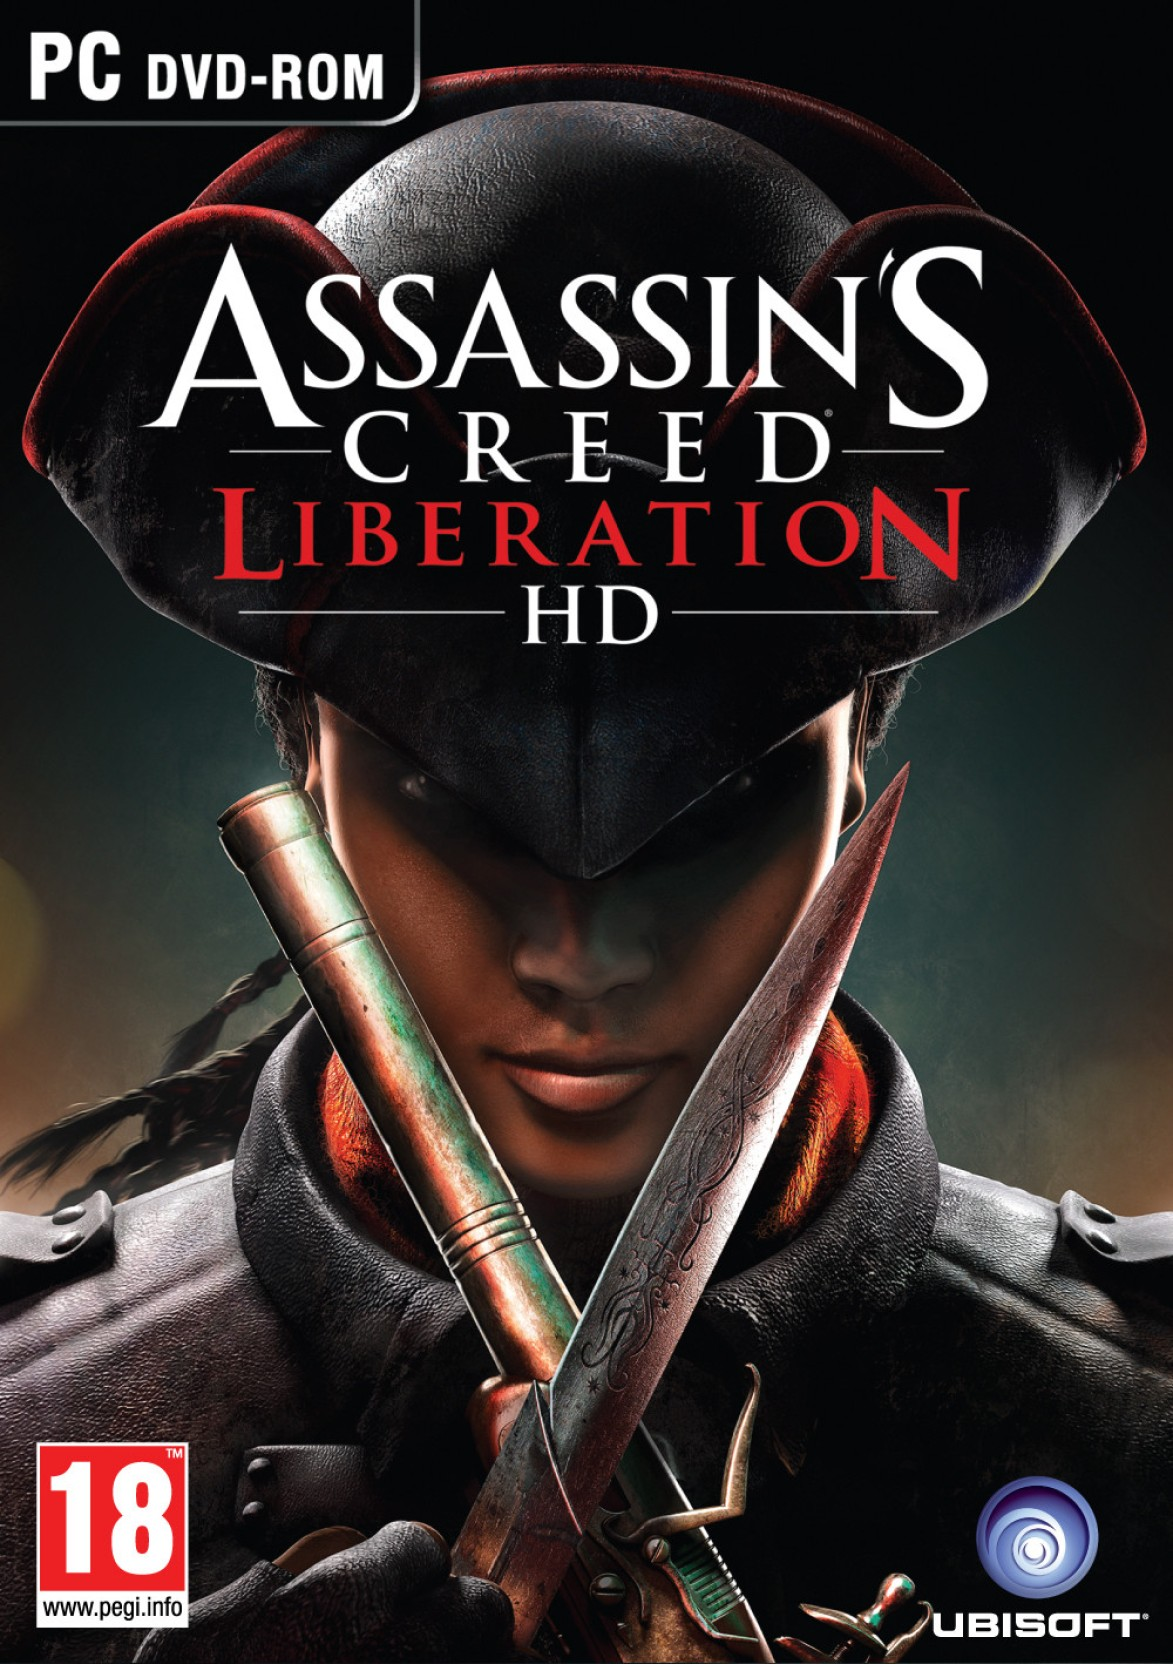 Assassin's Creed Liberation - HD